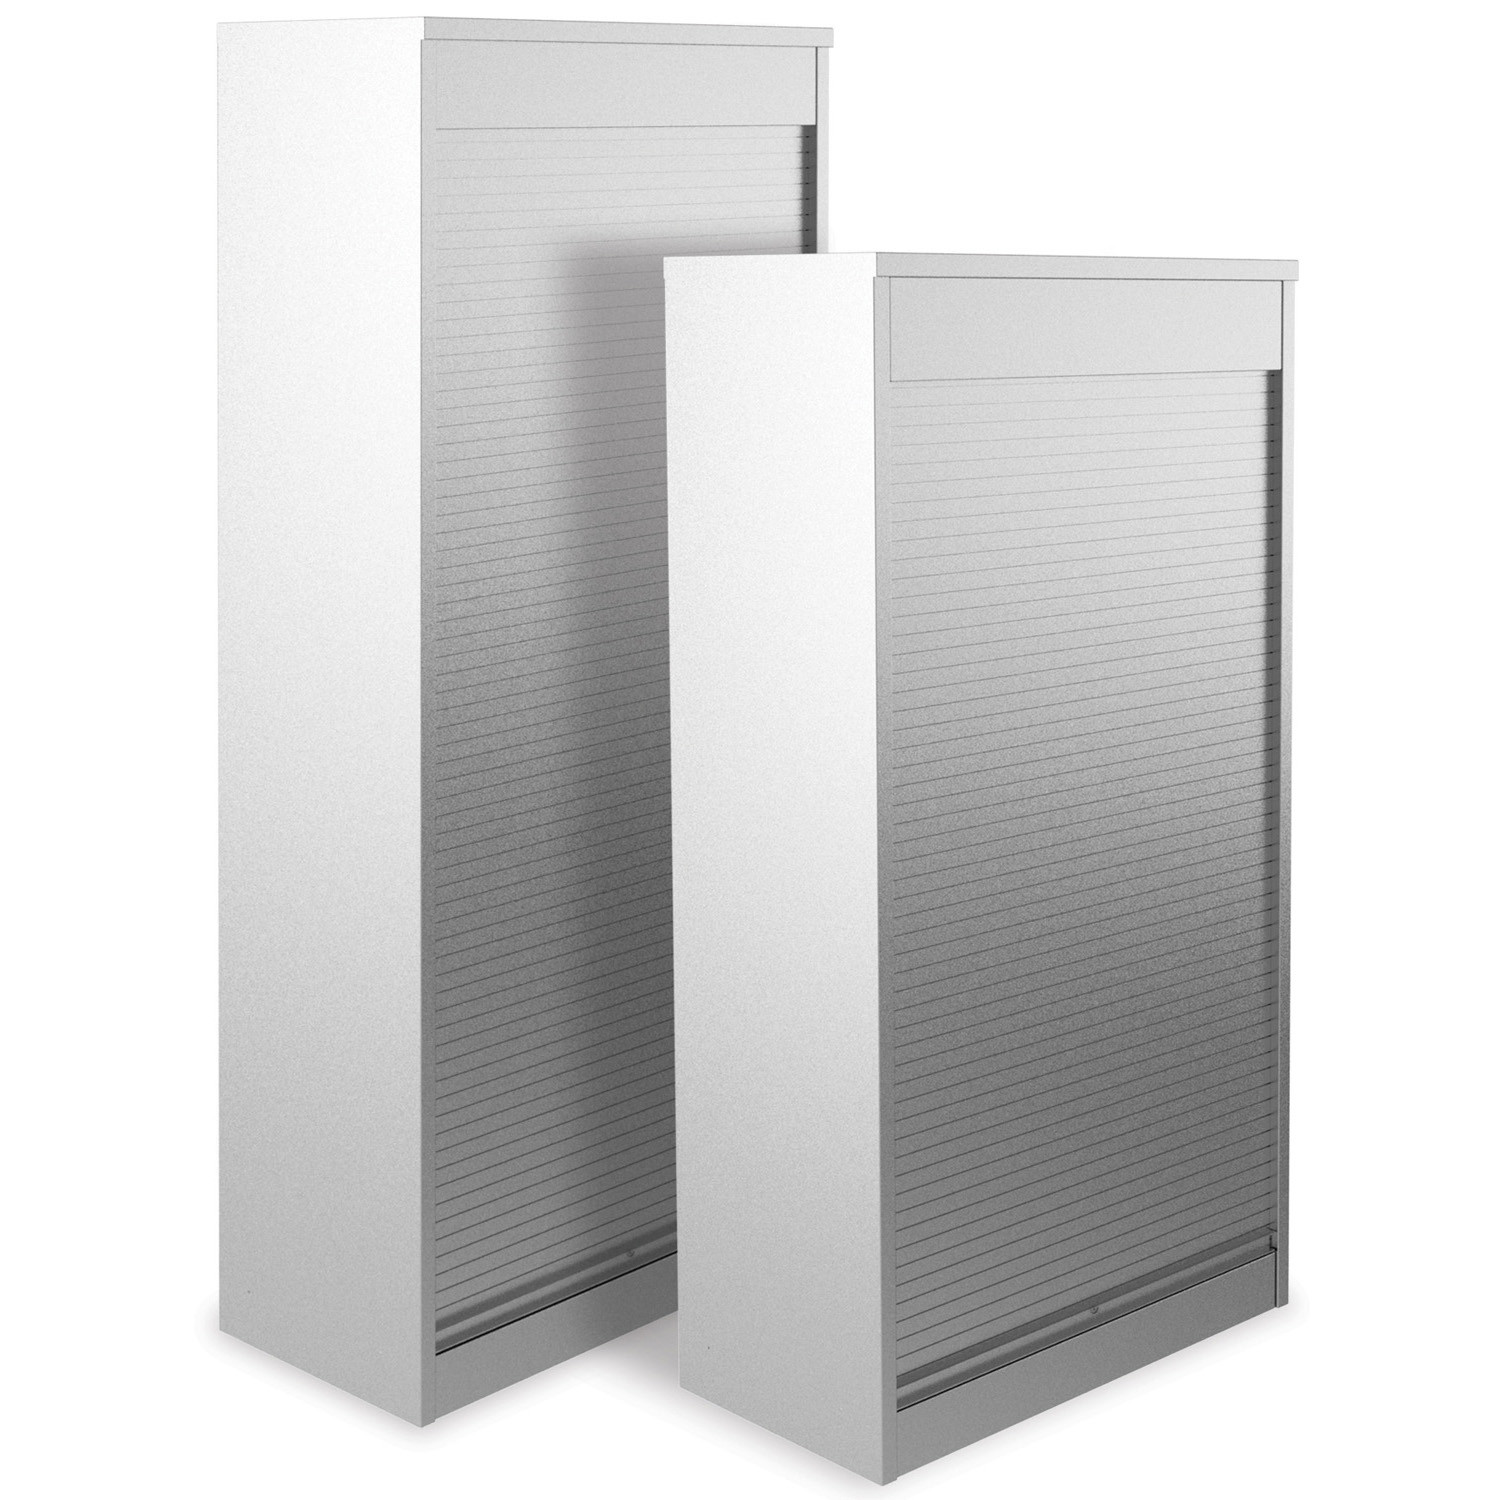 Vertical Tambour Office Cupboards